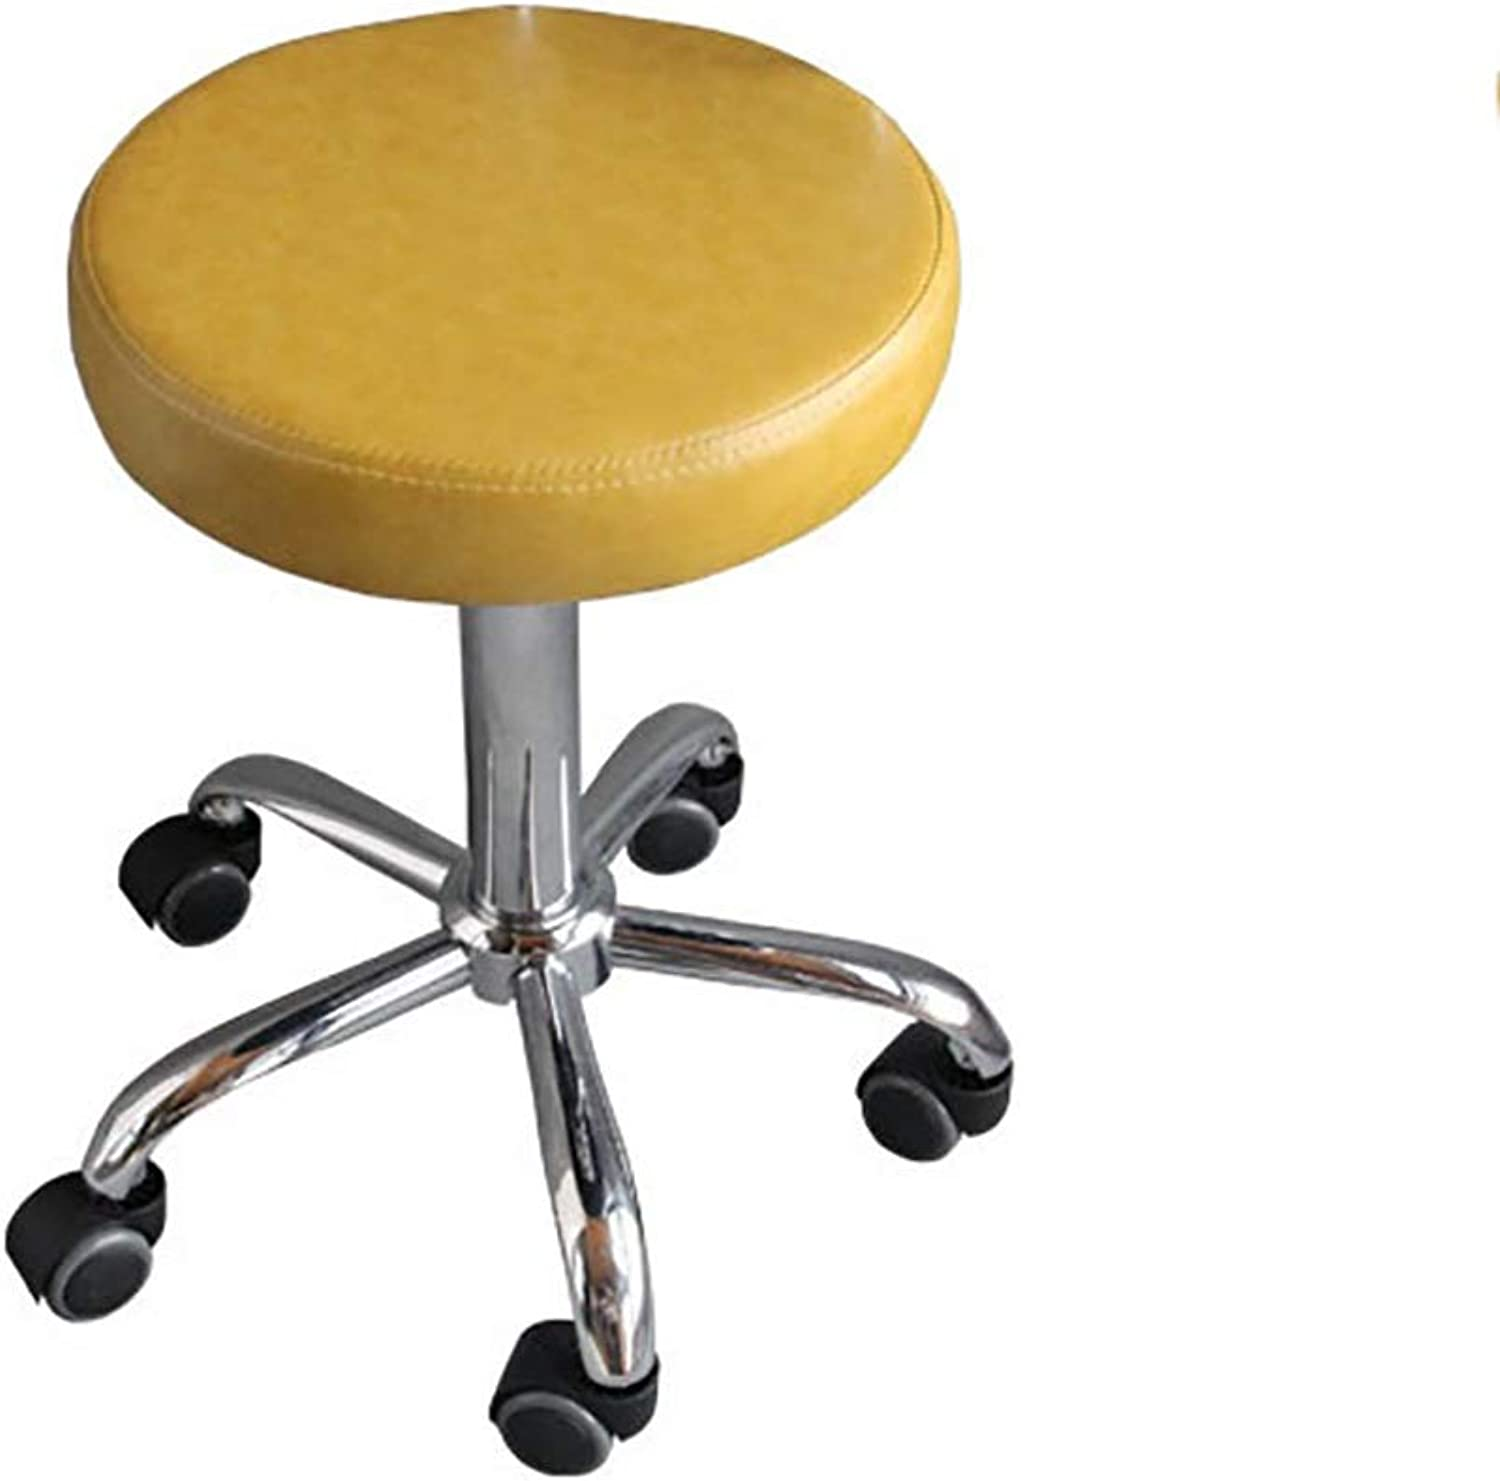 Beauty Stool, Makeup Stool, Hydraulic Pulley Stool, Work Bench, Sipi Fabric PU Wheel Silent redation Tattoo Spa Salon Small Work Stool (color   Yellow)